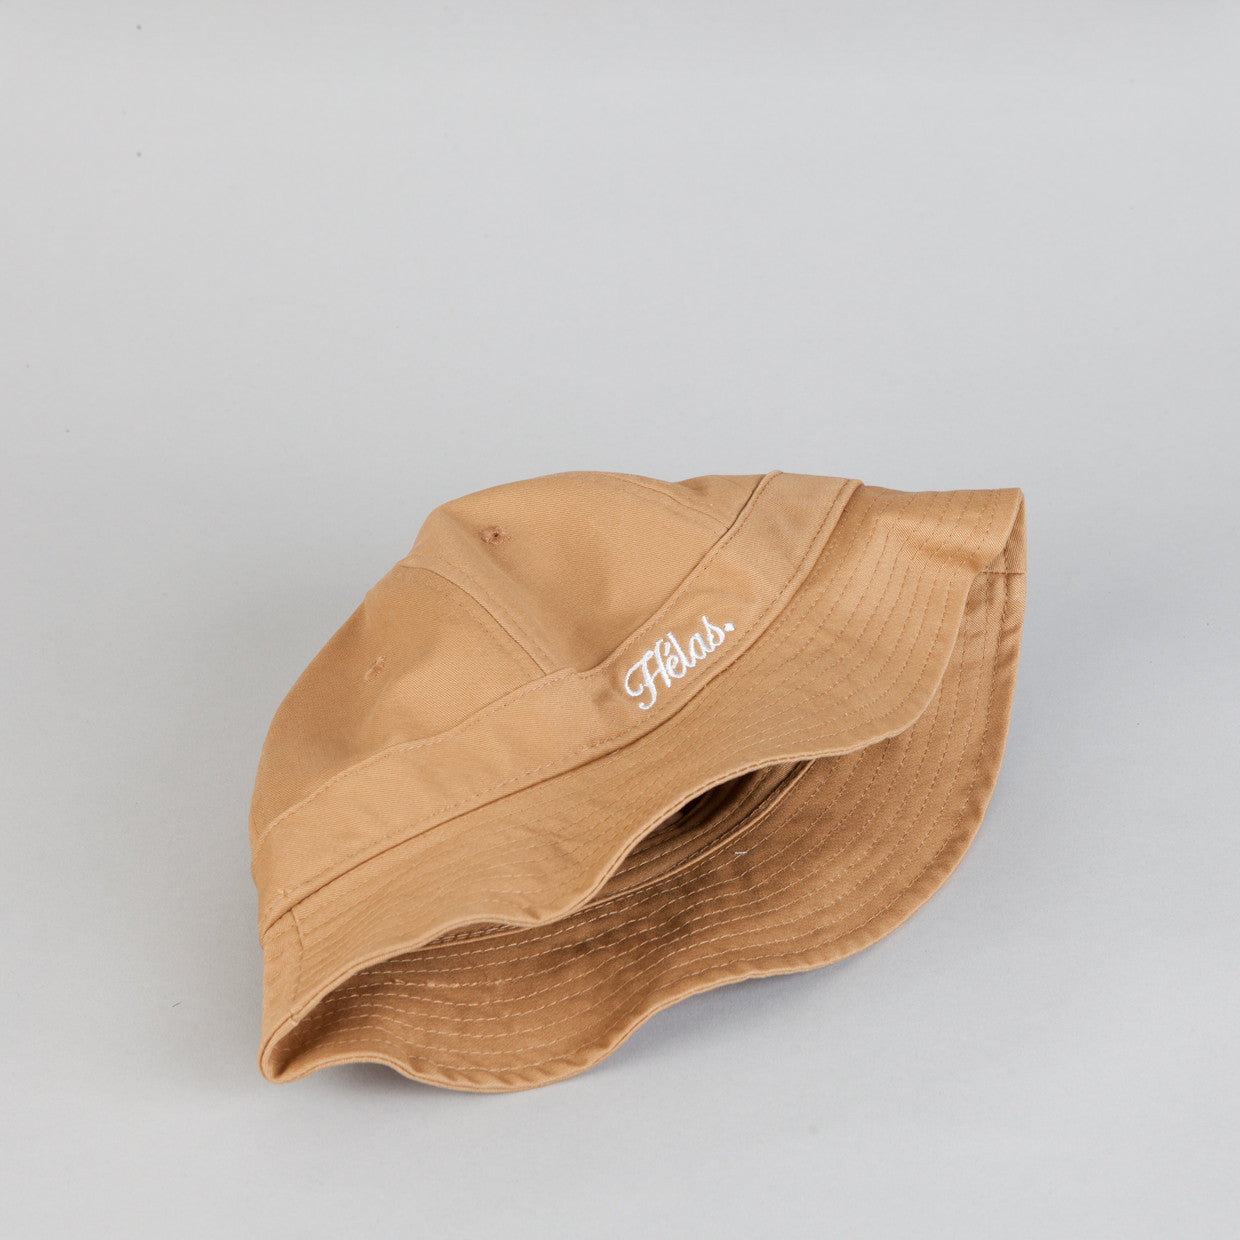 Helas Lebob Bucket Hat Brown Twill